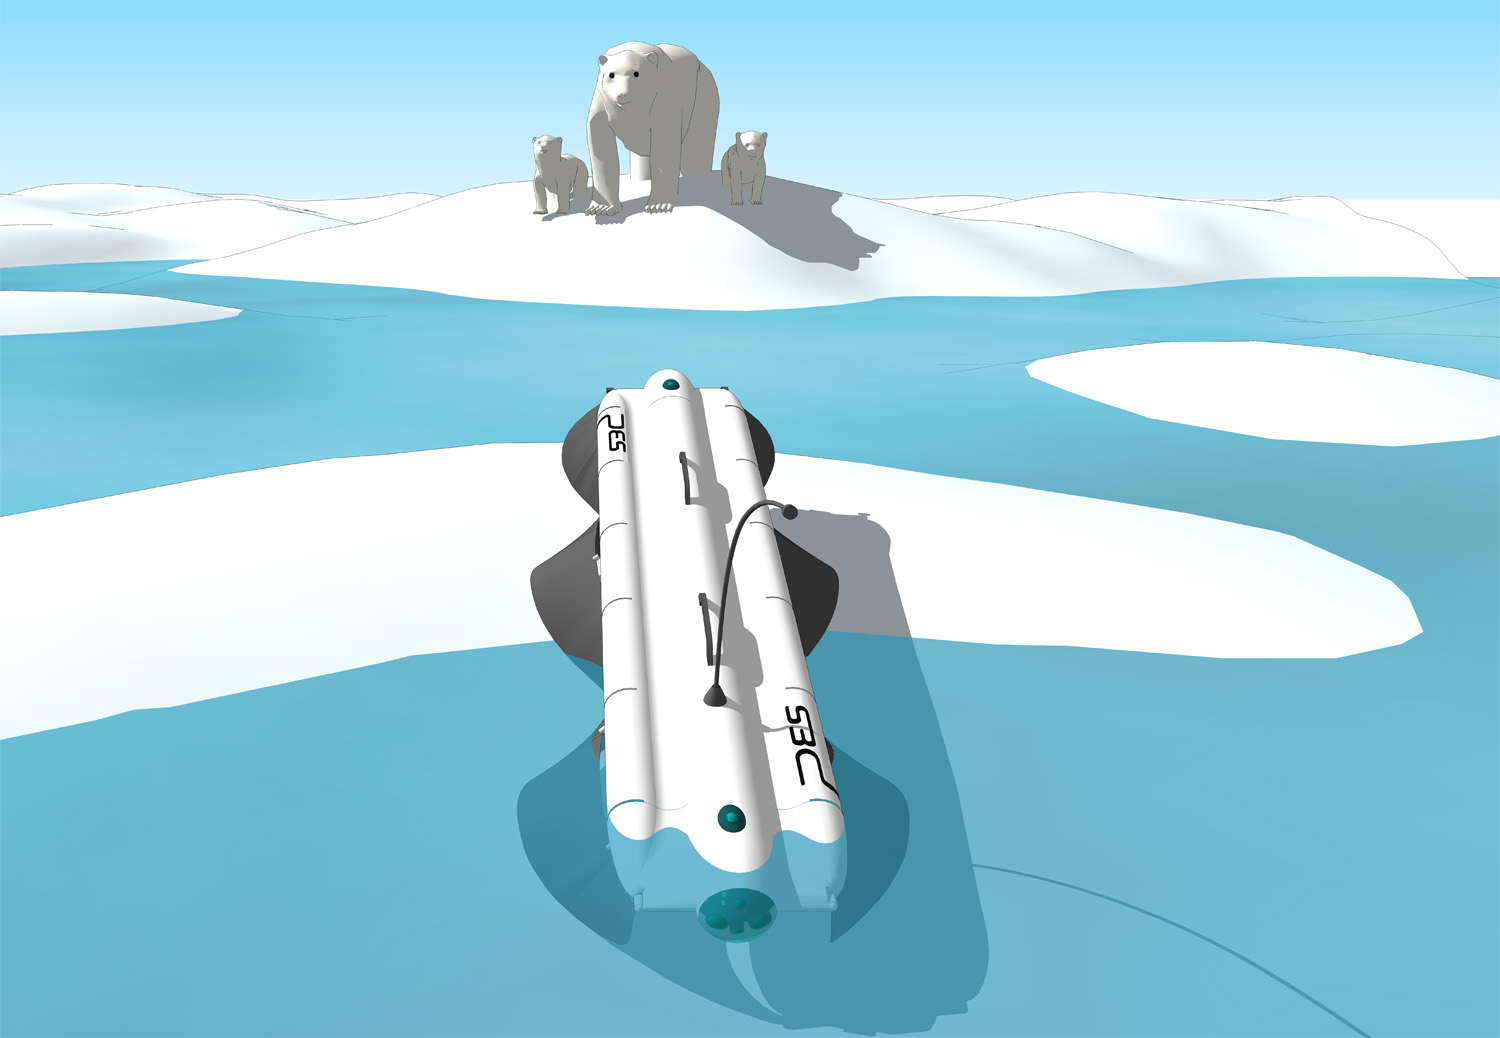 Velox_robot_polar_bear_encounter